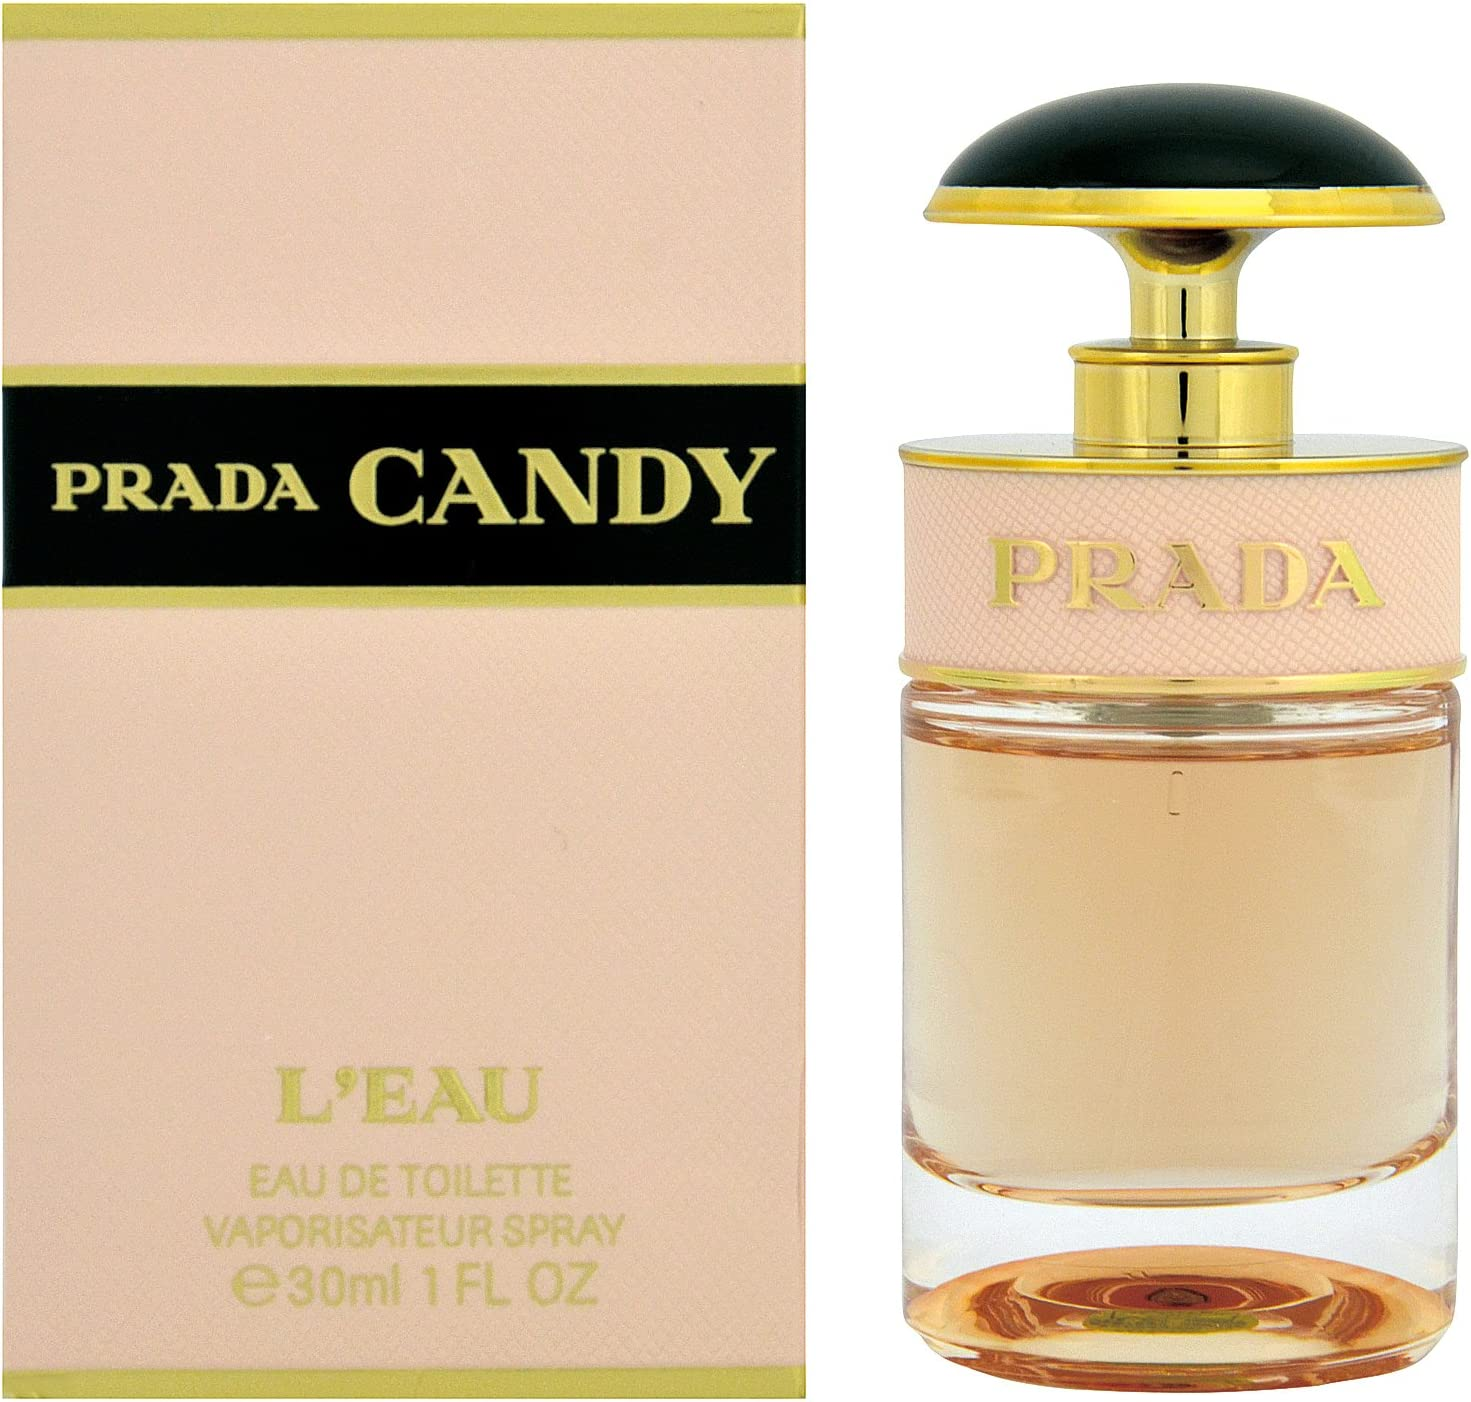 Prada LEau Candy Agua de Colonia - 30 ml: Amazon.es: Belleza